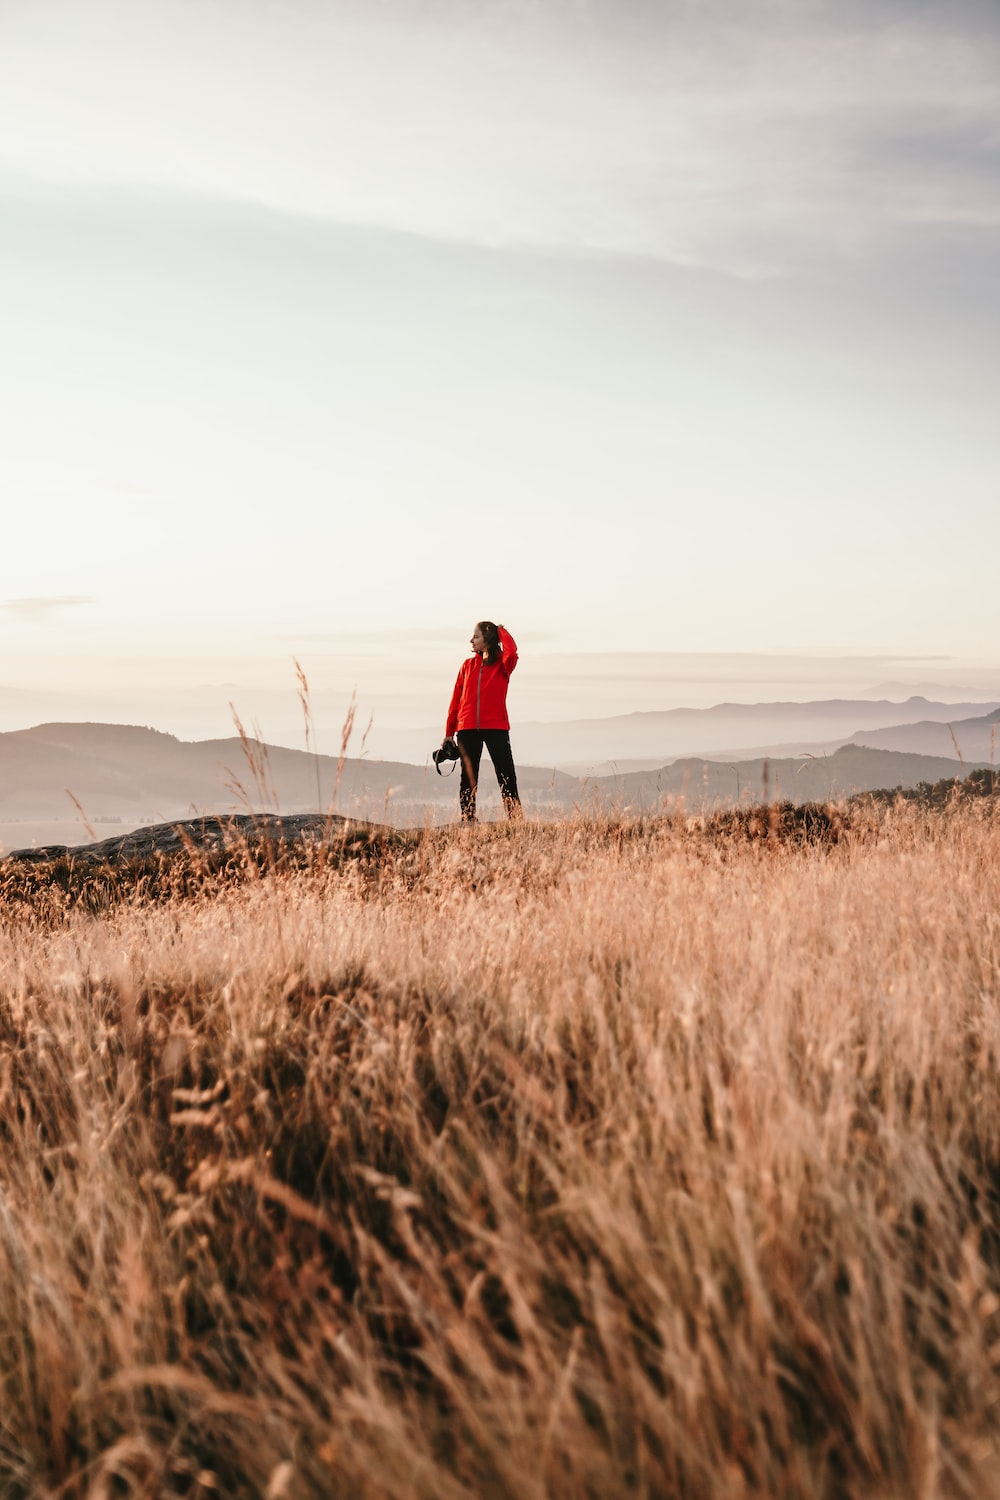 person in red jacket walking on brown grass field during daytime